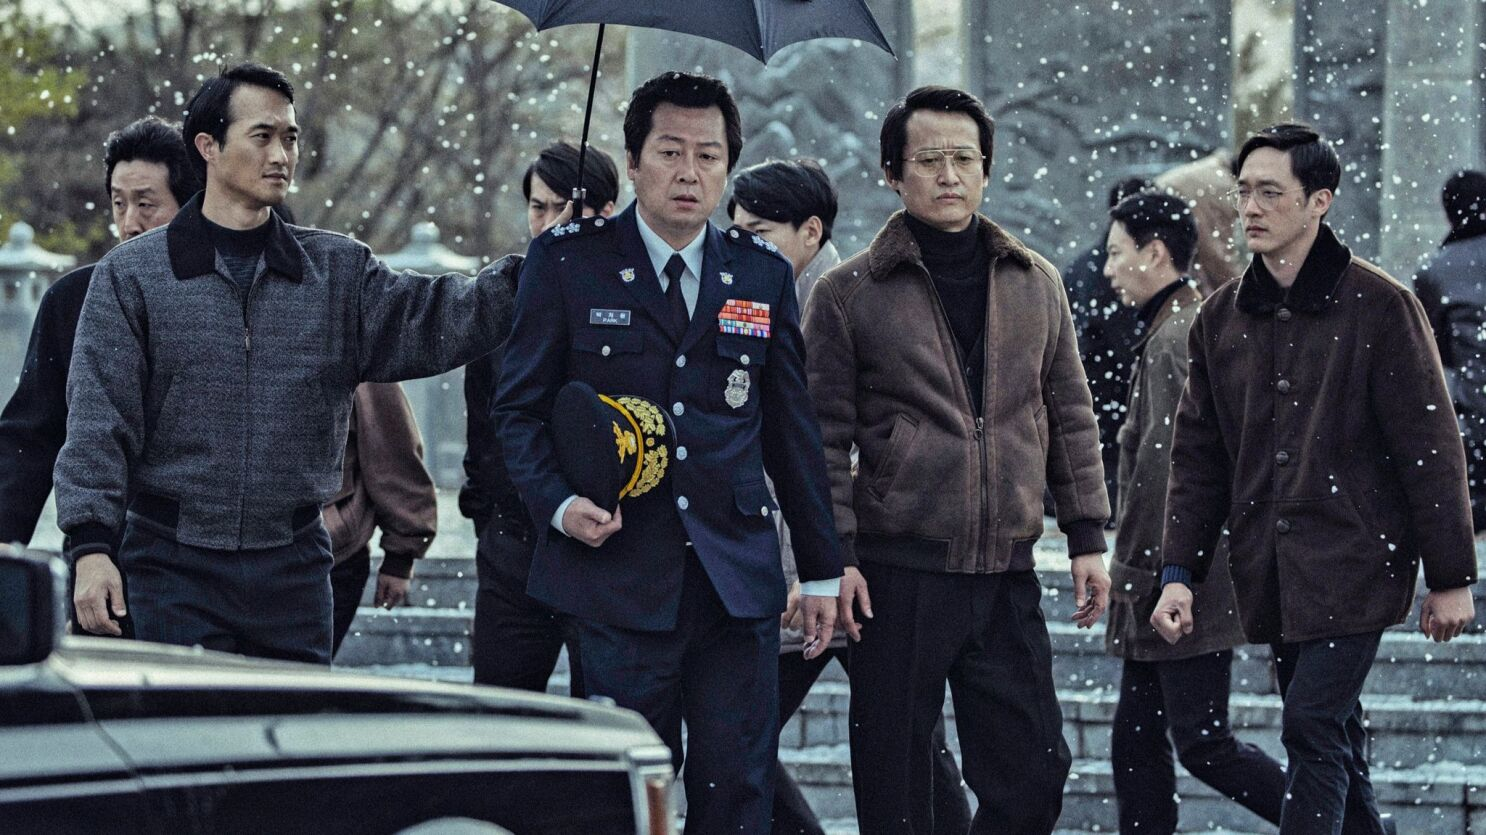 Review: Political intrigue stirs South Korean thriller '1987: When the Day  Comes' - Los Angeles Times